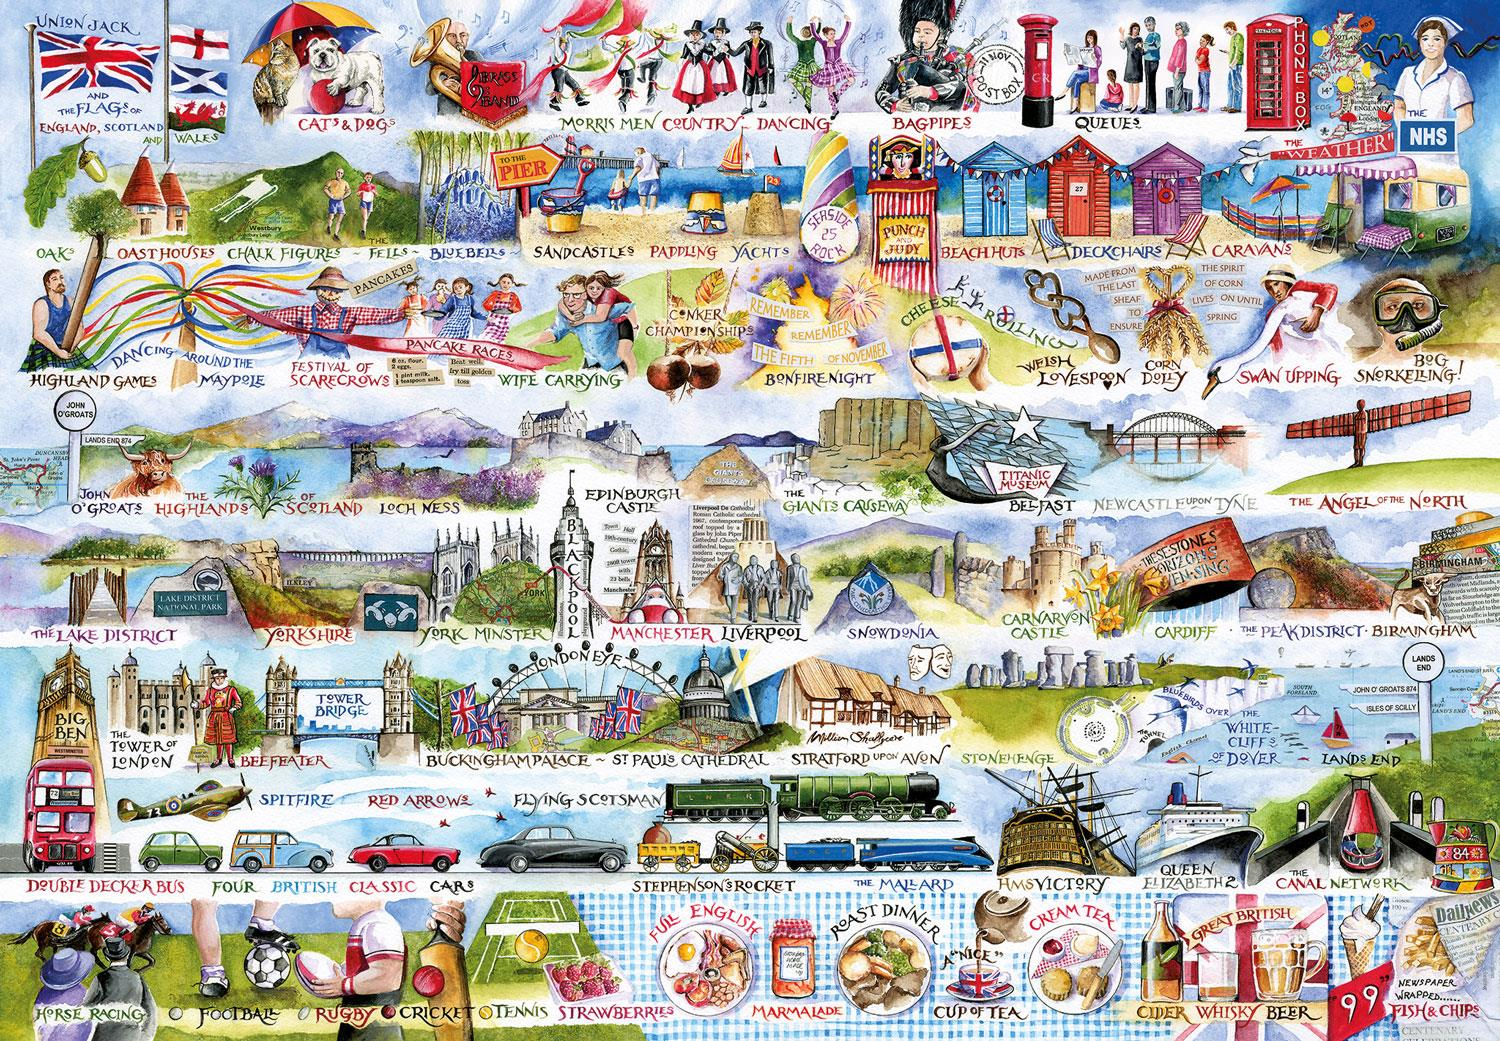 Gibsons Cream Teas & Queuing Jigsaw Puzzle (2000 Pieces)